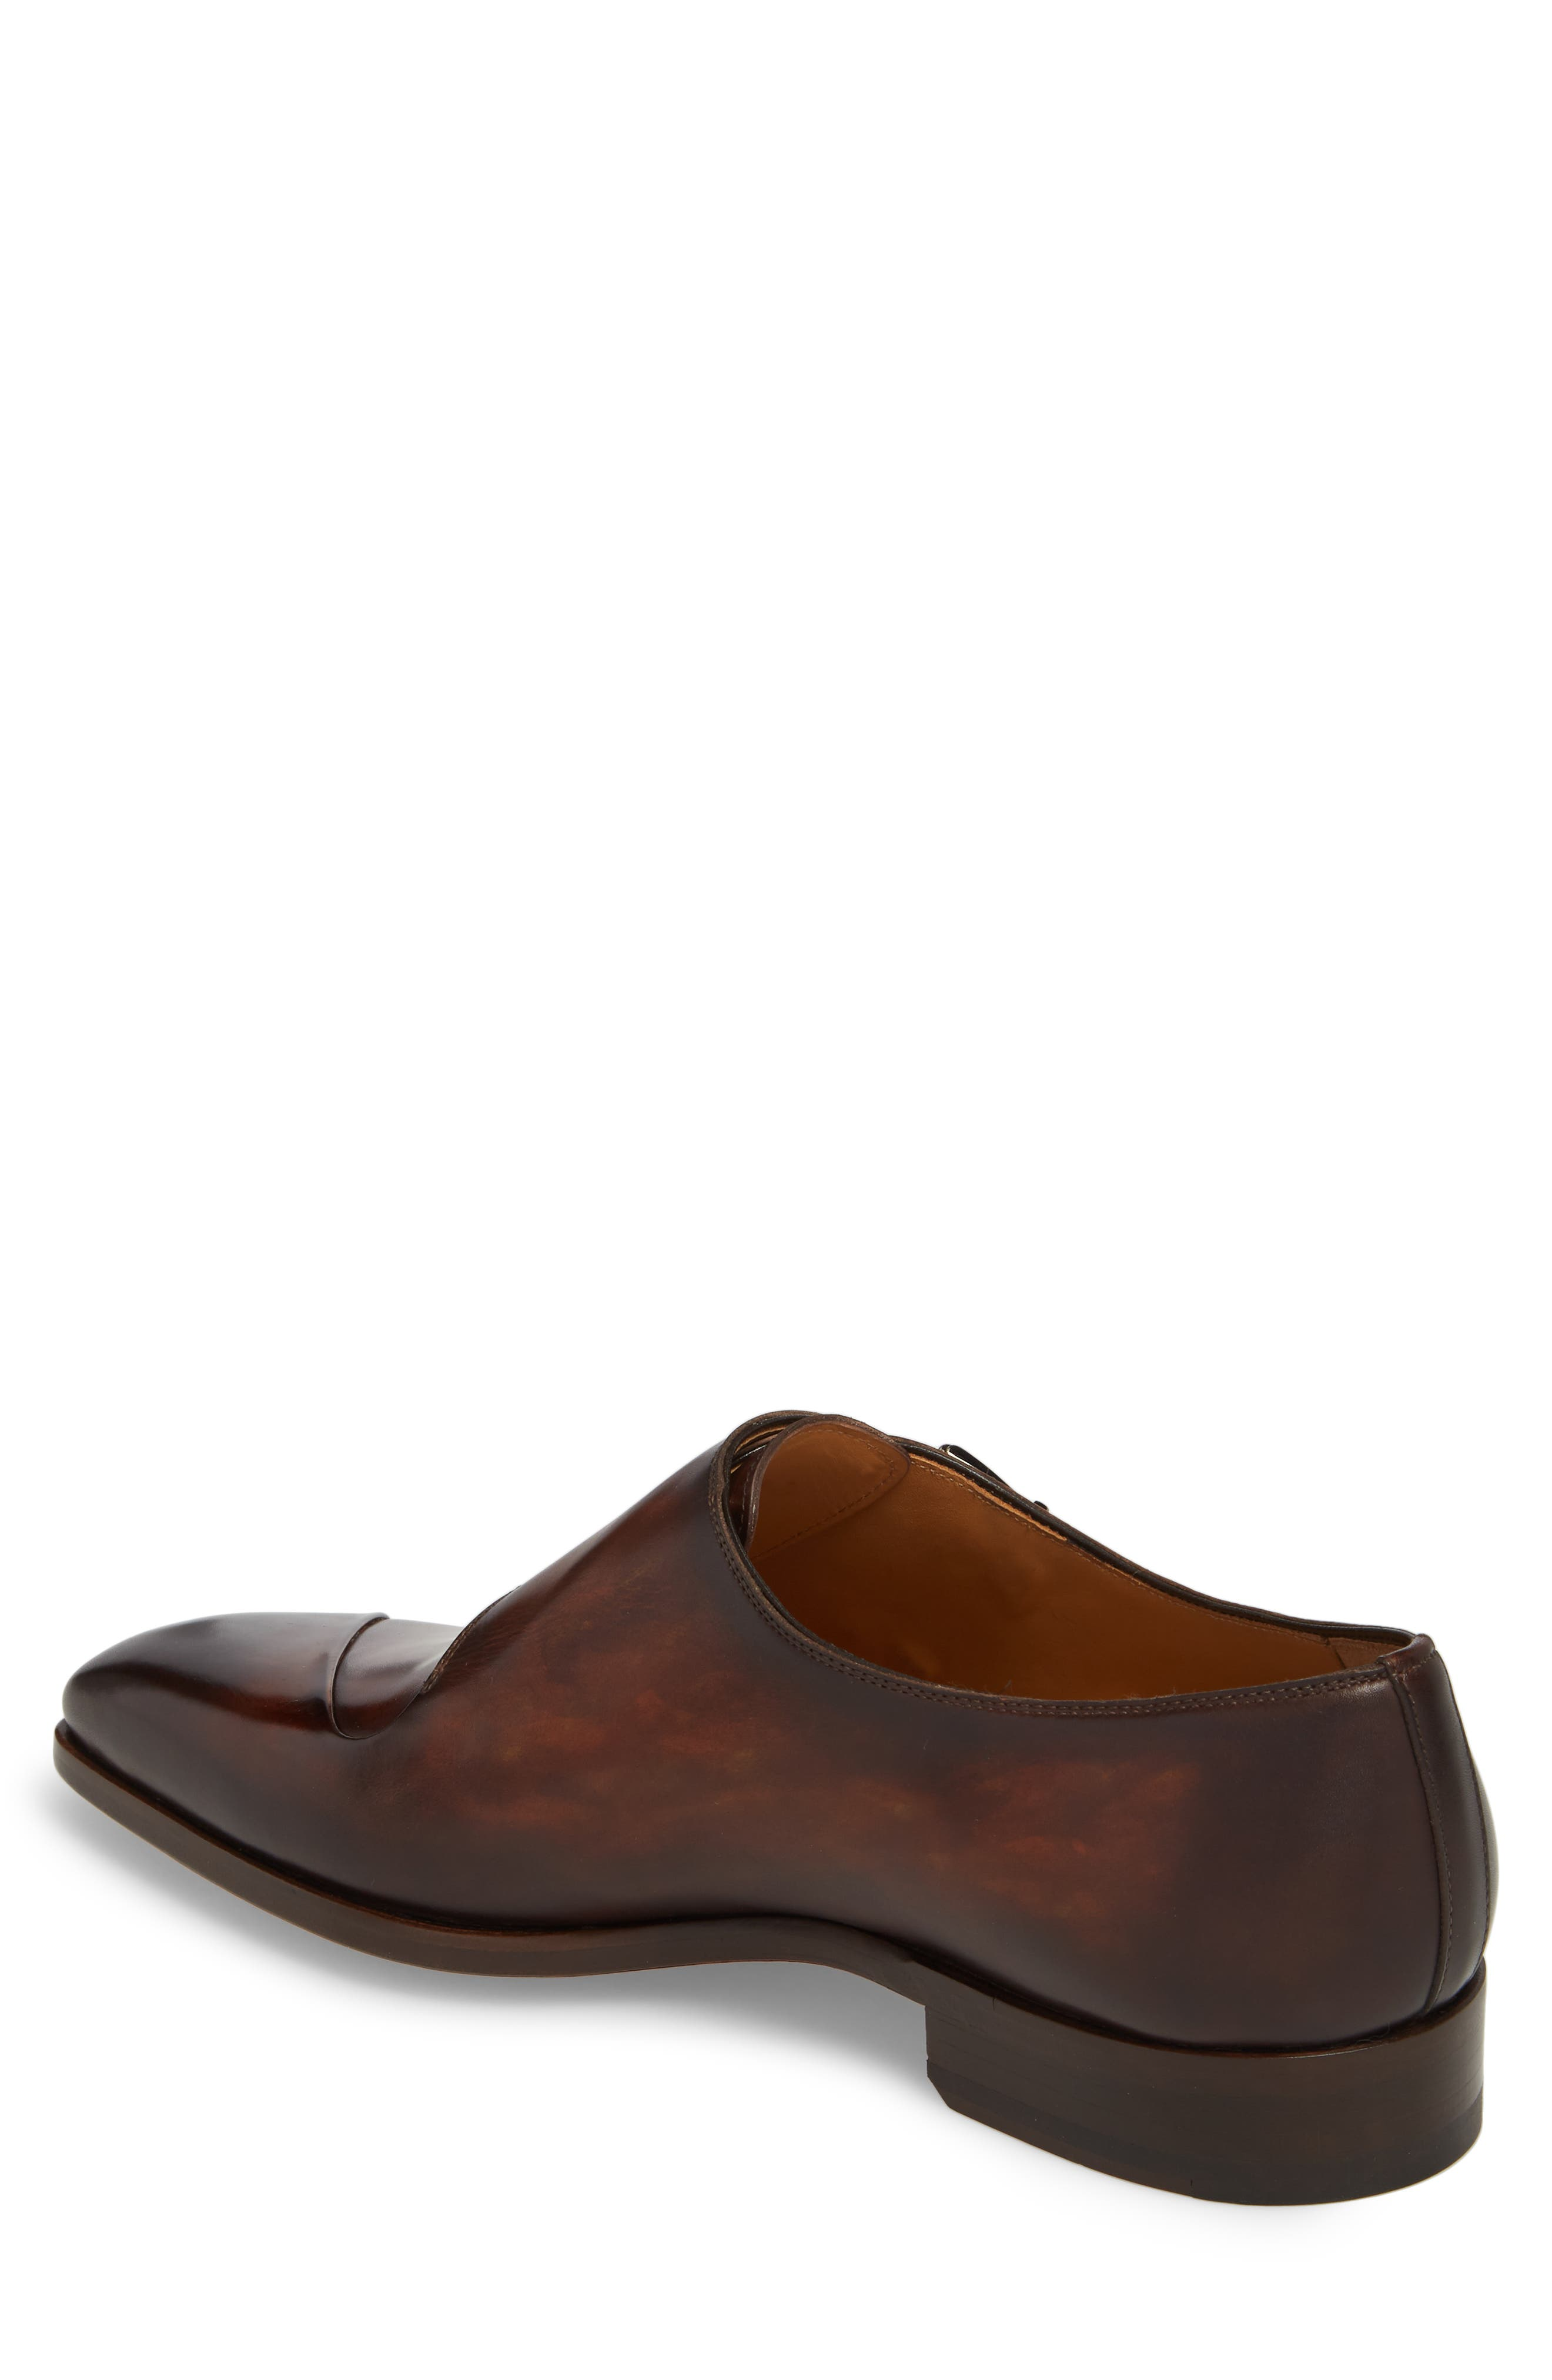 Hafiz Double Strap Monk Shoe,                             Alternate thumbnail 2, color,                             TABACO LEATHER